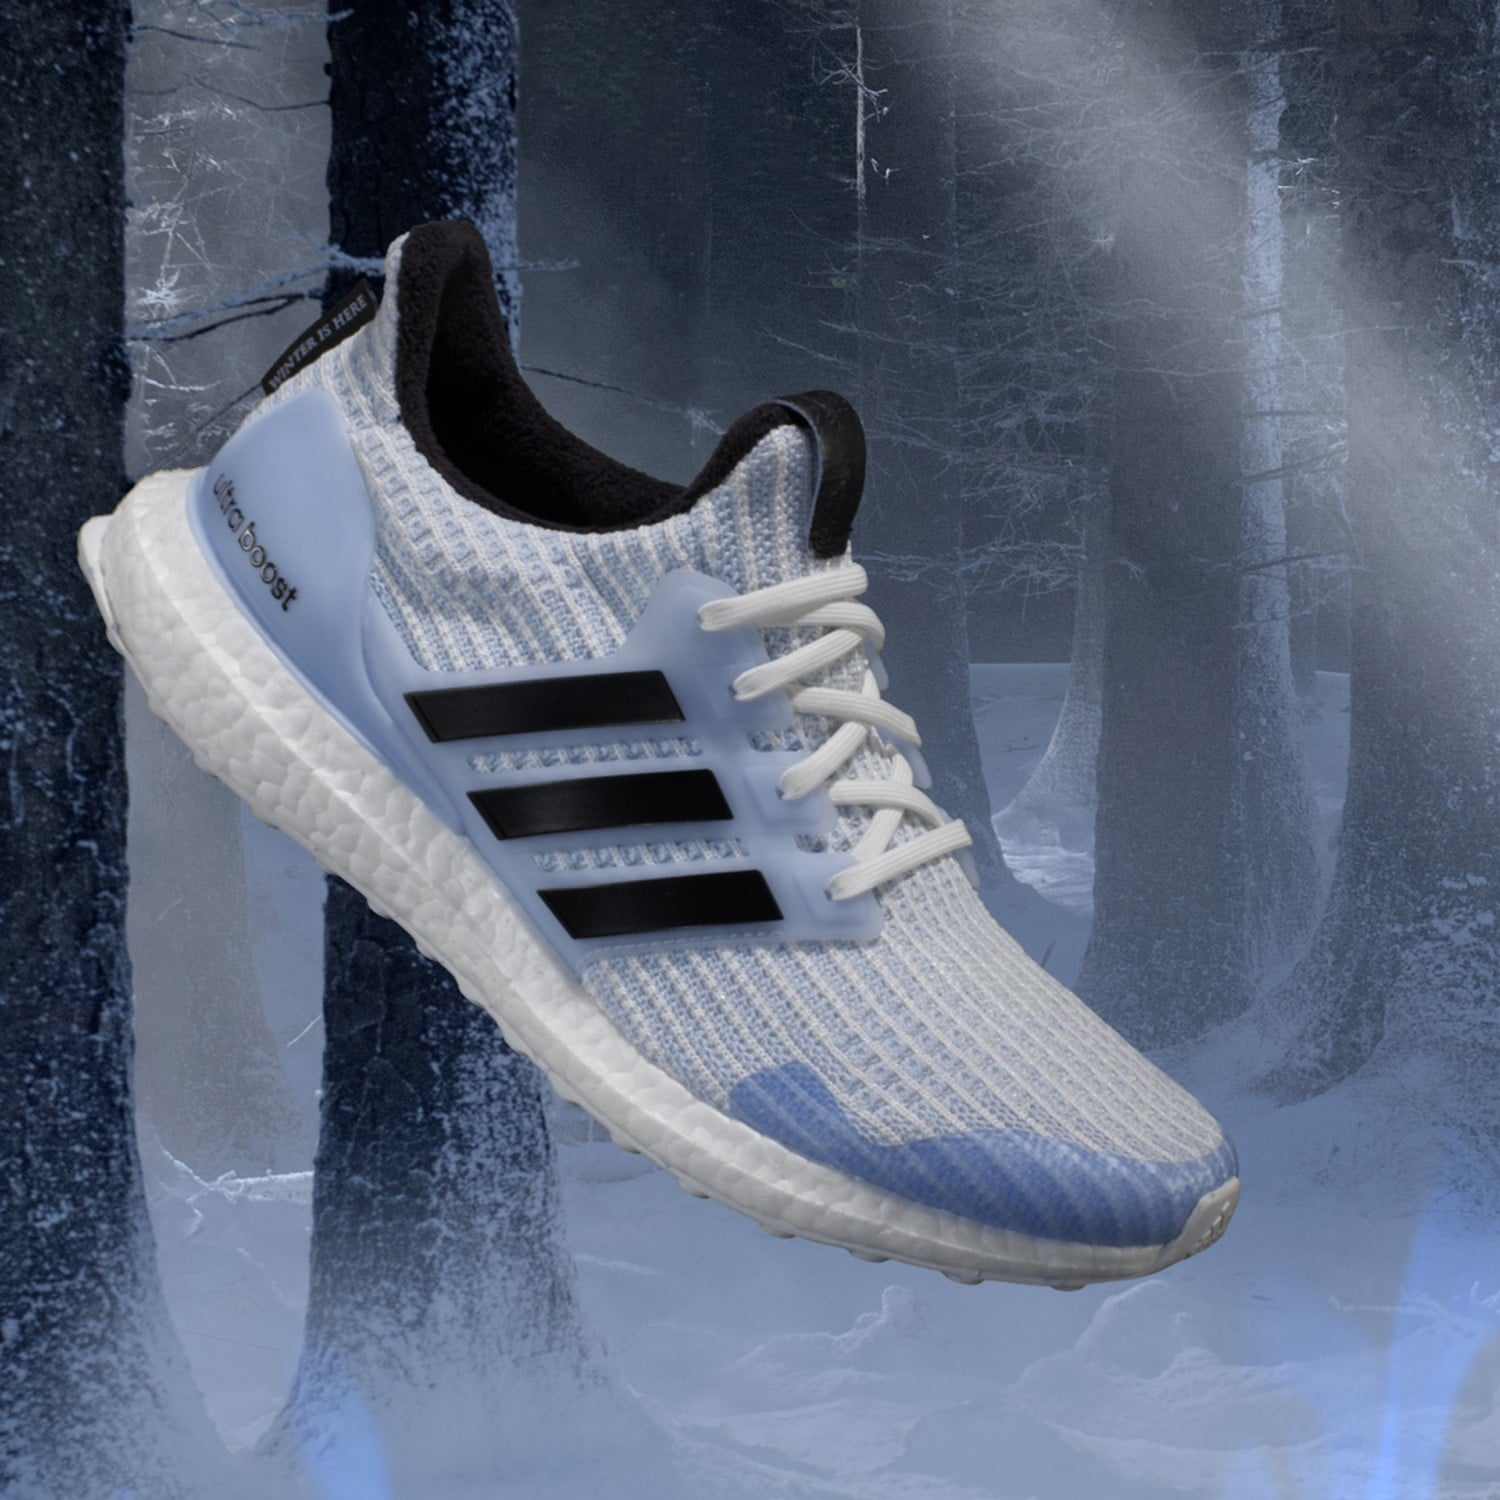 6d9d866dd Adidas Game of Thrones Collection